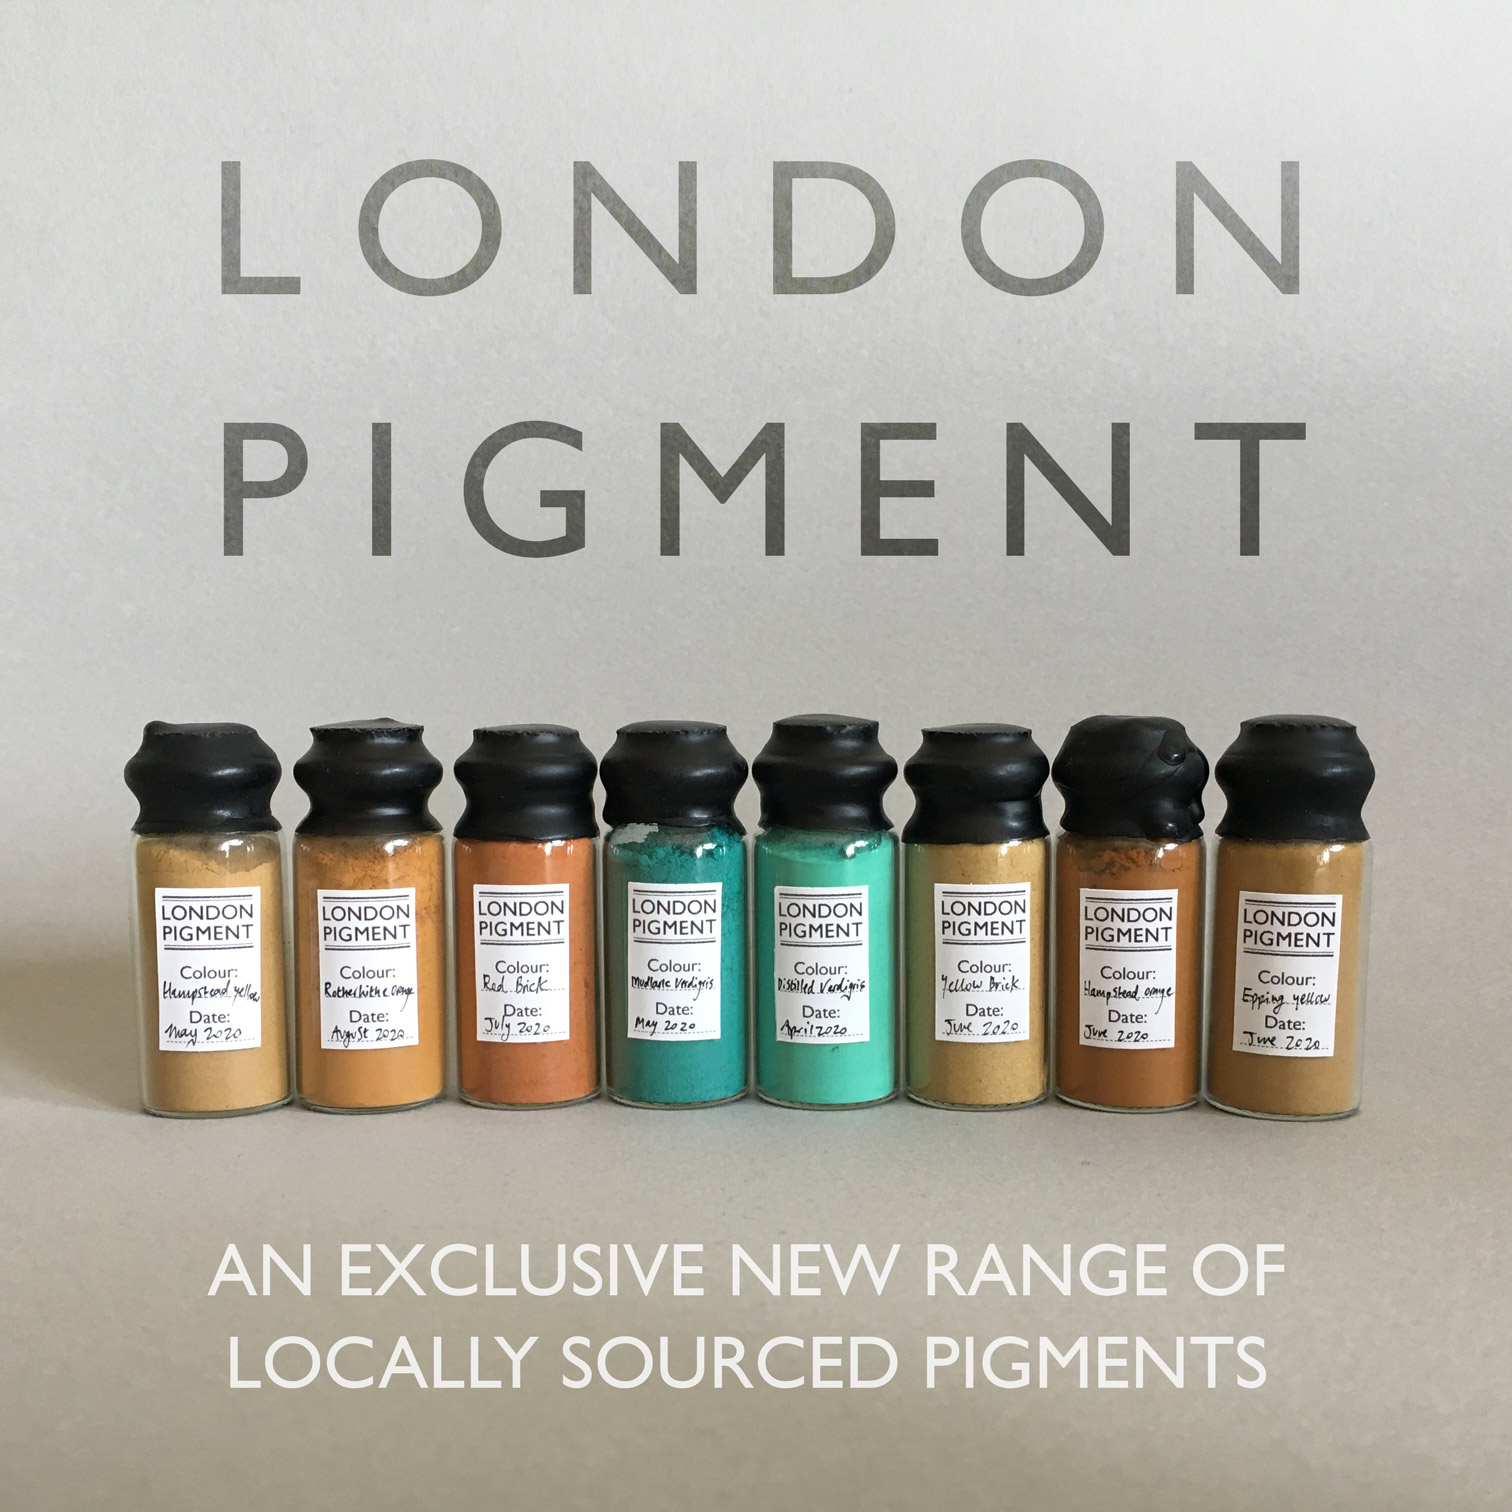 A new range of locally sourced pigments from London.